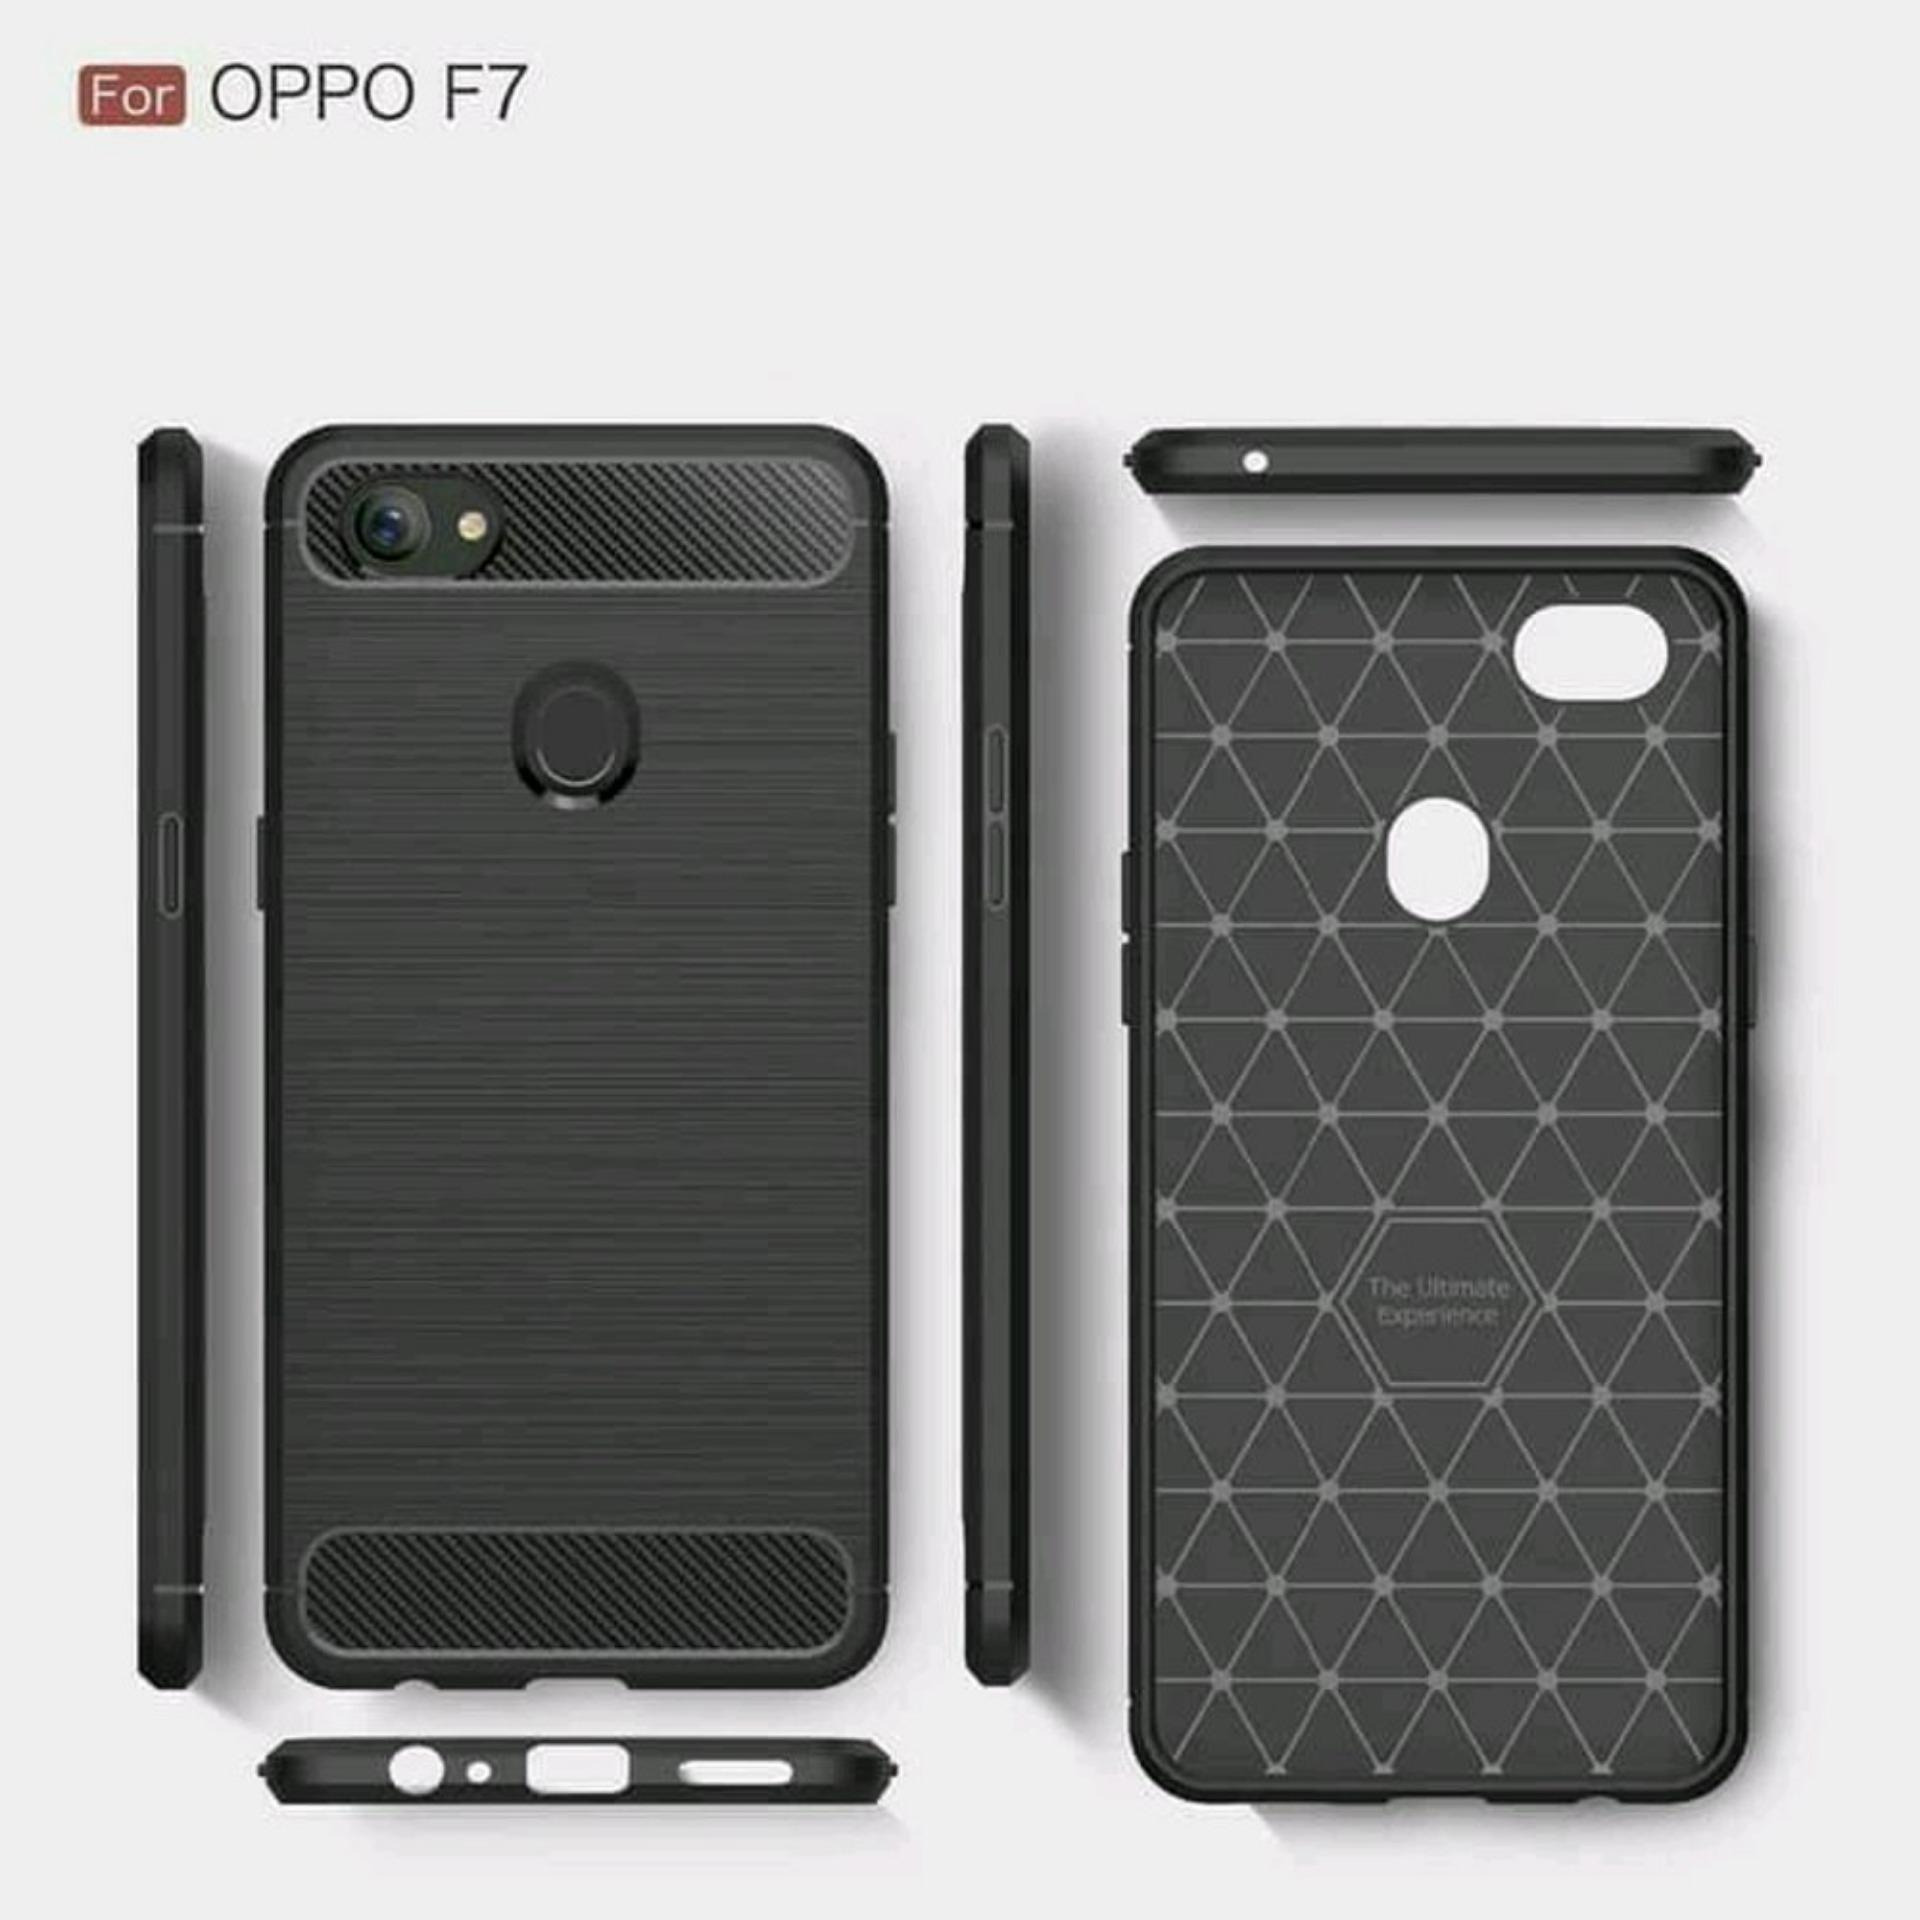 LOLLYPOP Back case Brused Series Oppo A83 Black Hitam TPU Jelly Silcone Softcase Backcover Shockproof